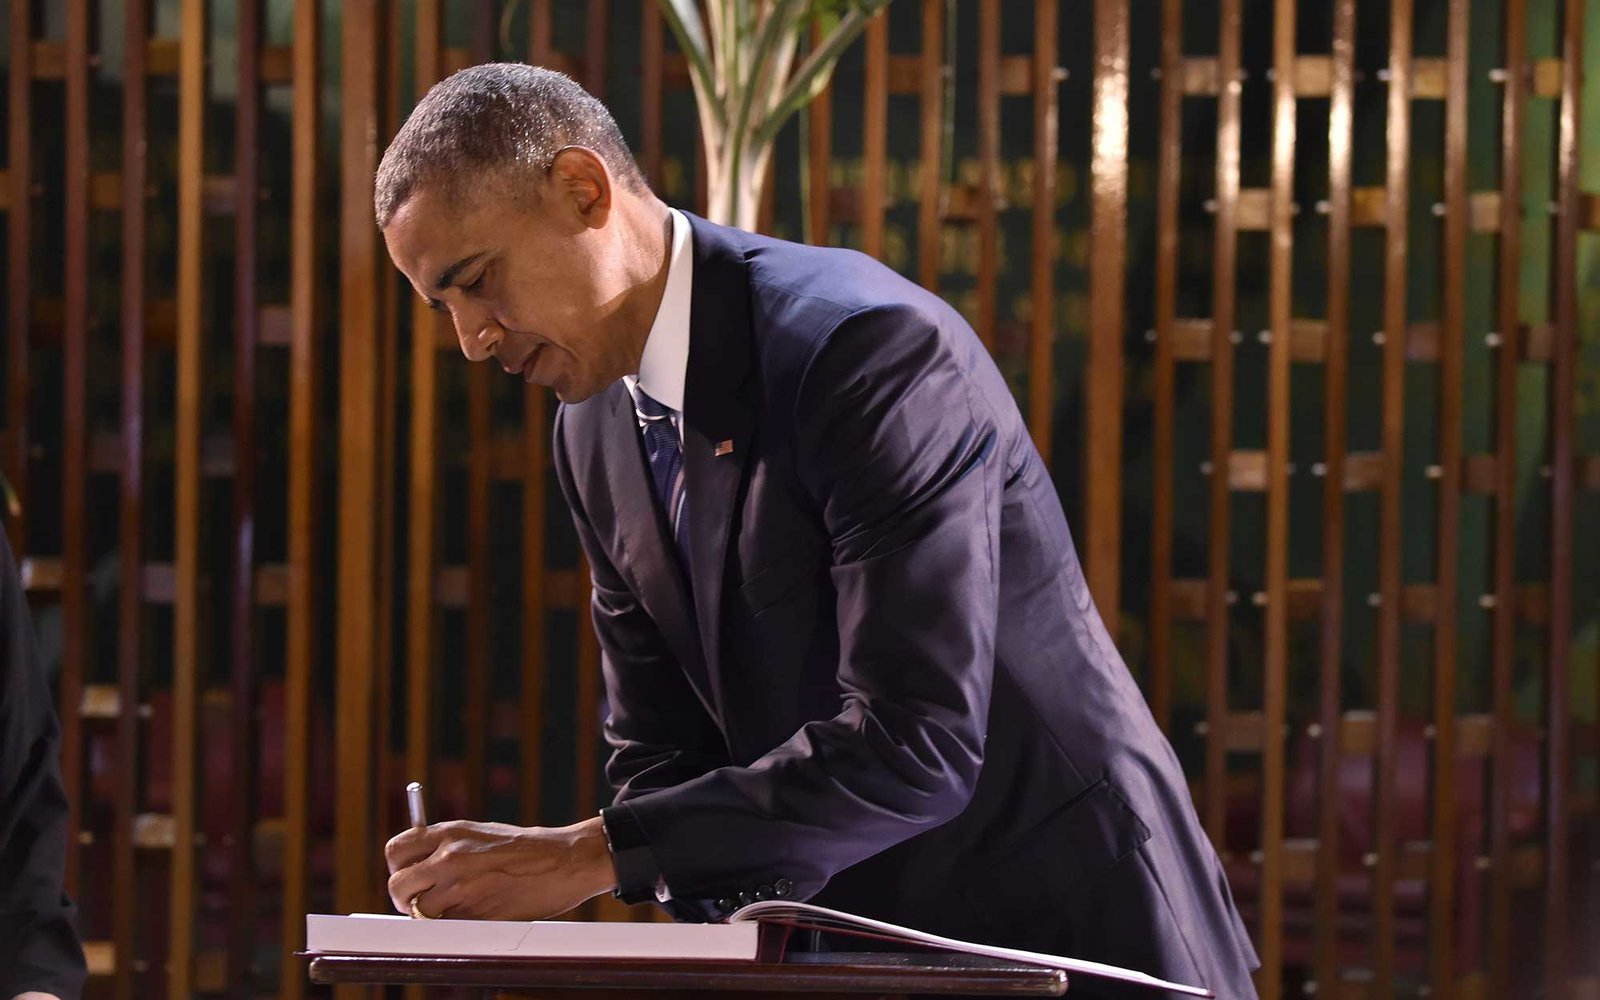 US President Barack Obama signs a visitors' book at the Revolution Palace in Havana on March 21, 2016. US President Barack Obama and his Cuban counterpart Raul Castro met Monday in Havana's Palace of the Revolution for groundbreaking talks on ending the s